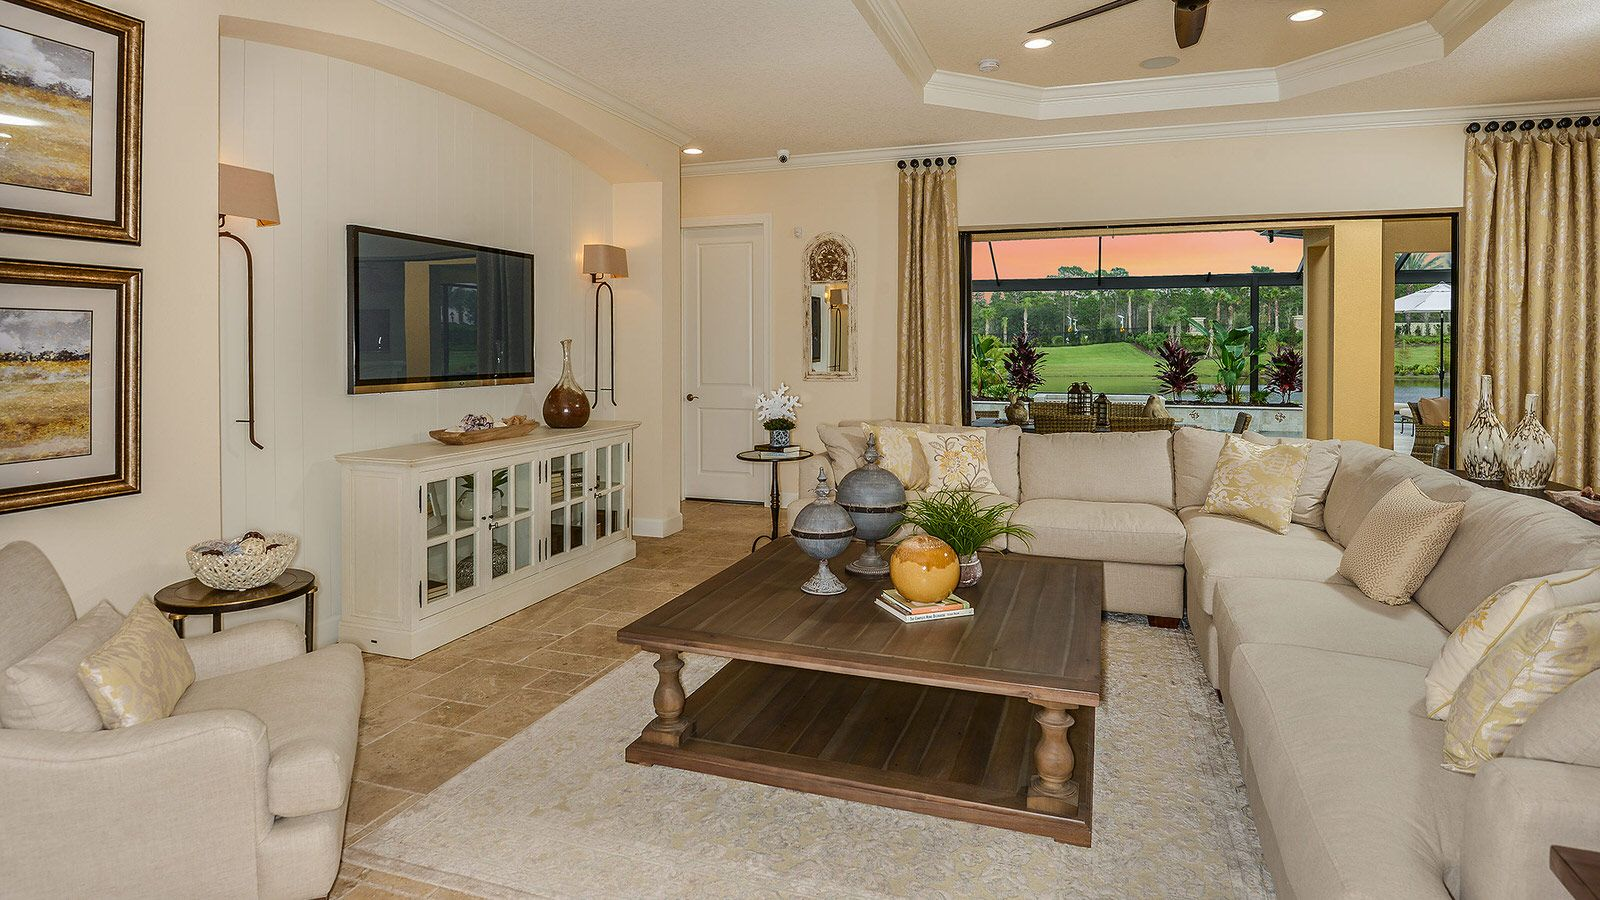 Living Area featured in the Pallazio Plan By Taylor Morrison in Tampa-St. Petersburg, FL